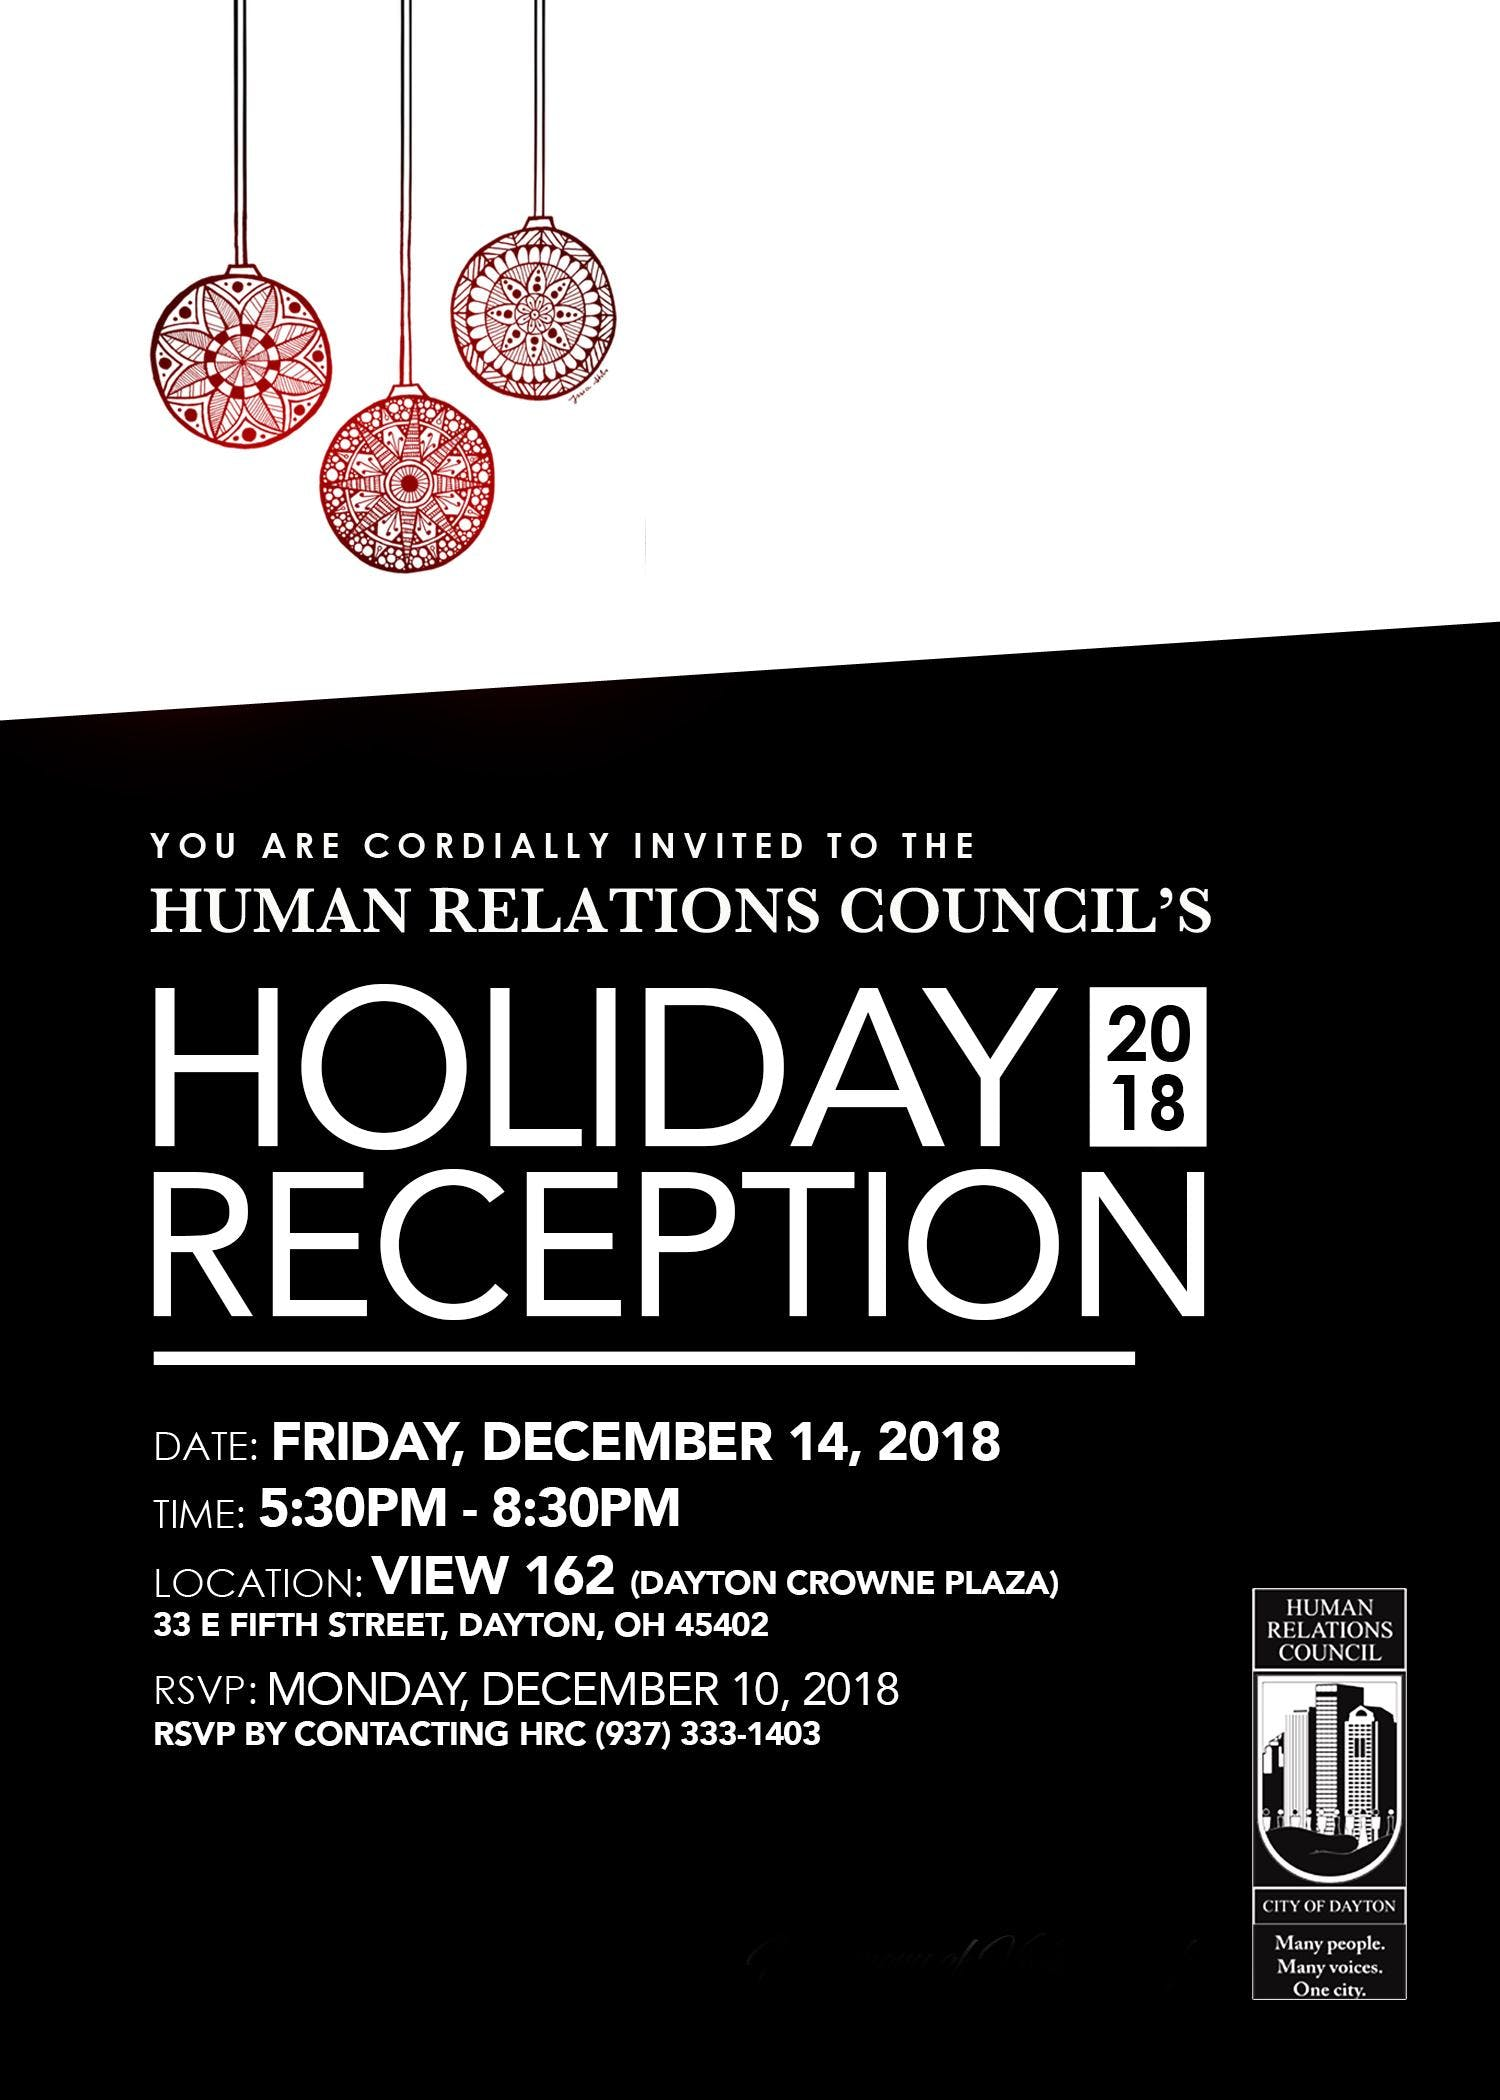 Human Relations Council's Holiday Reception